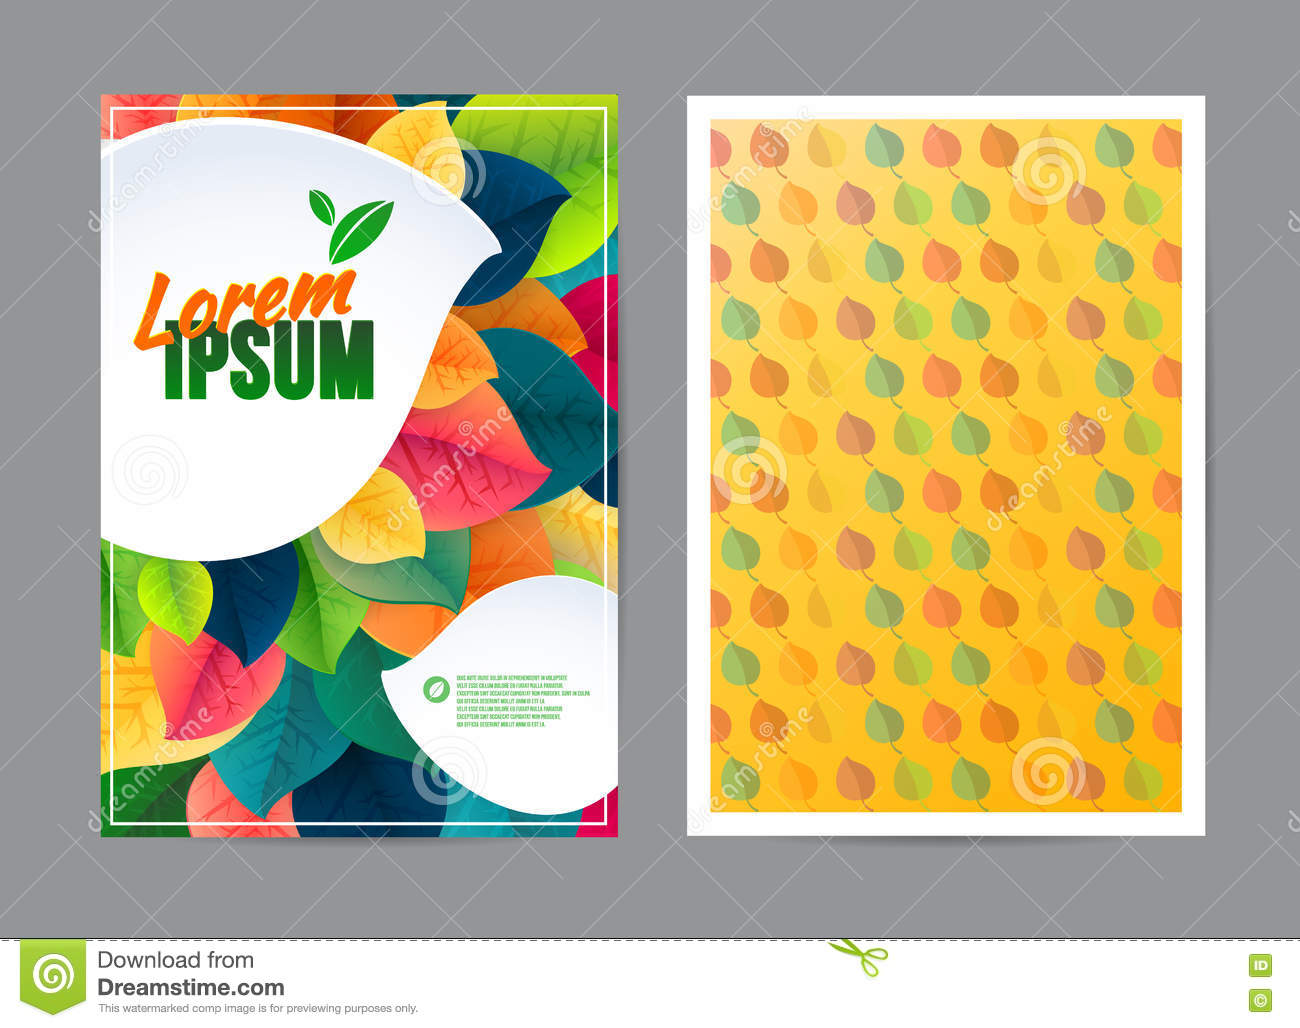 Poster design nature - Nature Banner Poster With Leaves Natural Ecology Banner Eco Brochure Design Vector Template Corporate Poster With